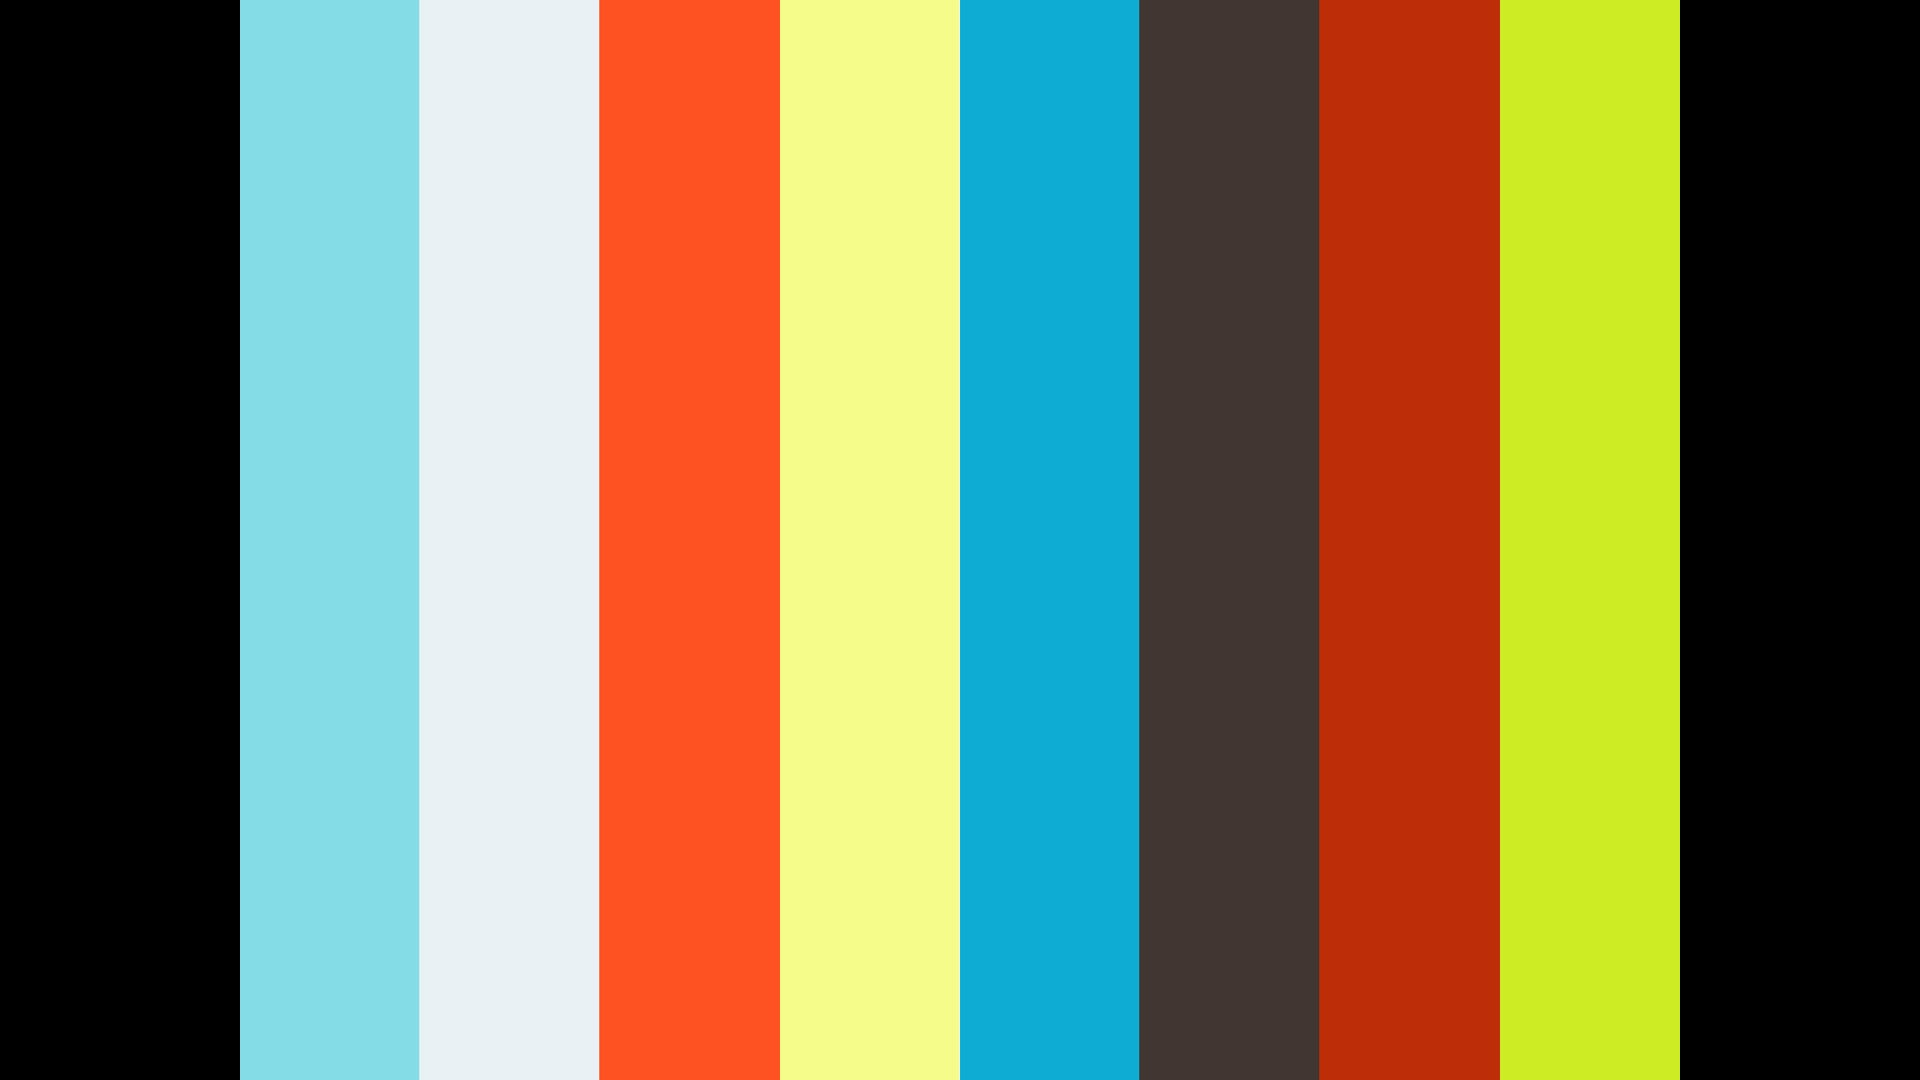 Red Bull Stormchase